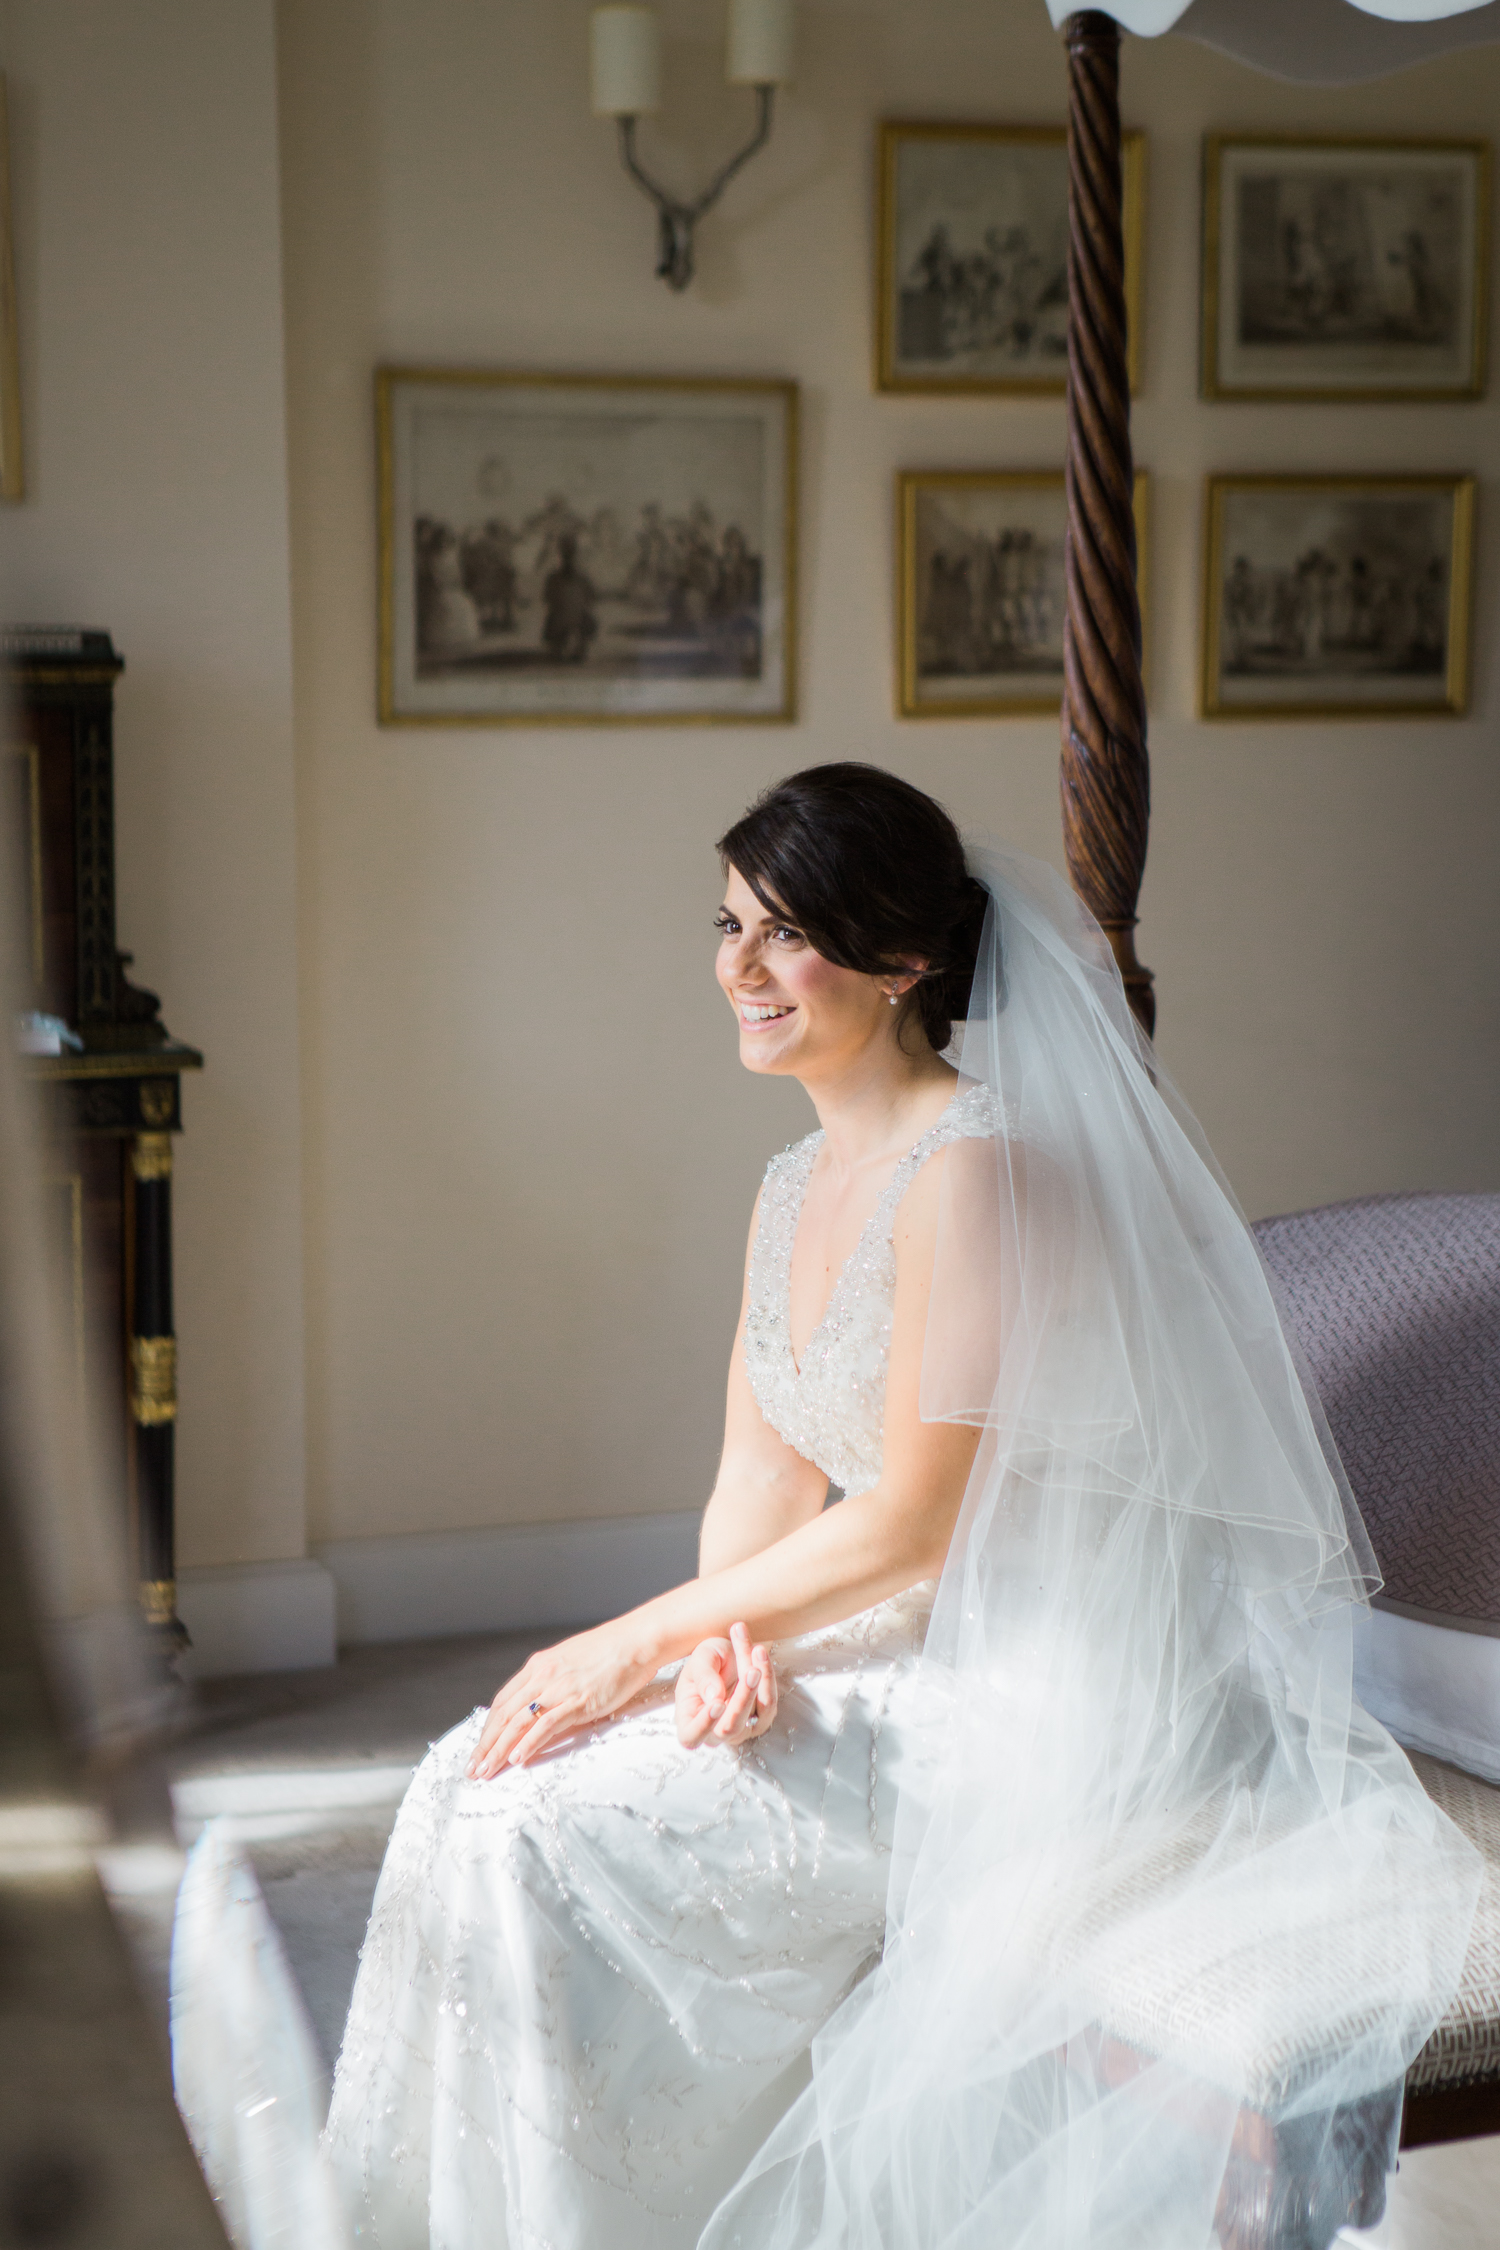 Bridal Portraits at Iscoyd Park. Fine art wedding photography in the UK.